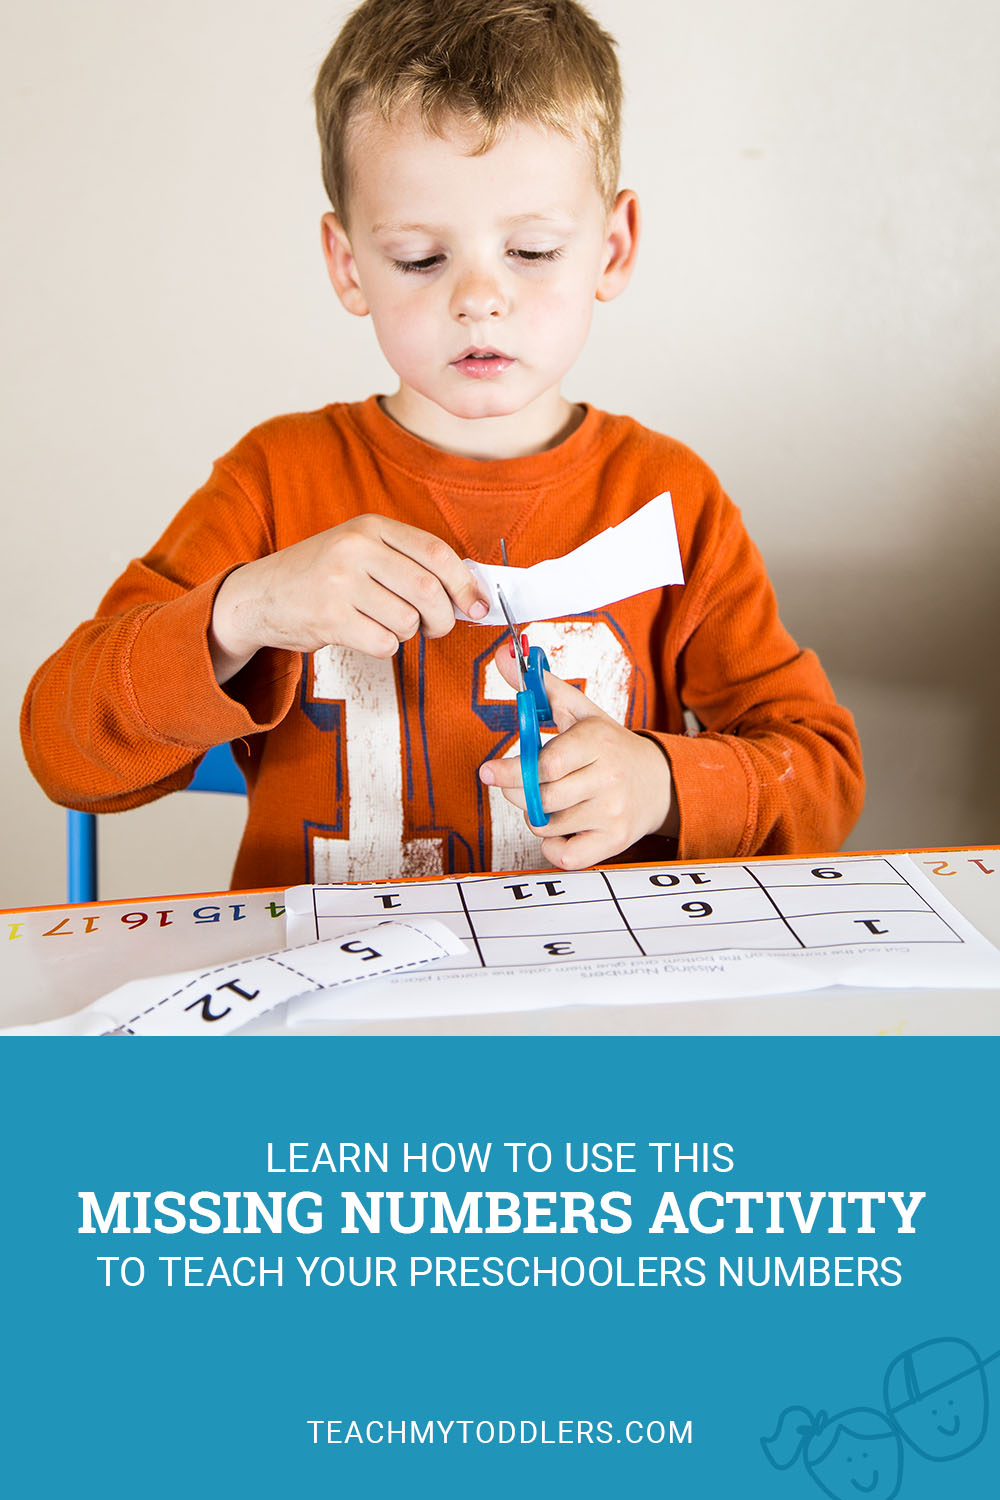 Learn how to use this missing numbers activity to teach preschoolers numbers